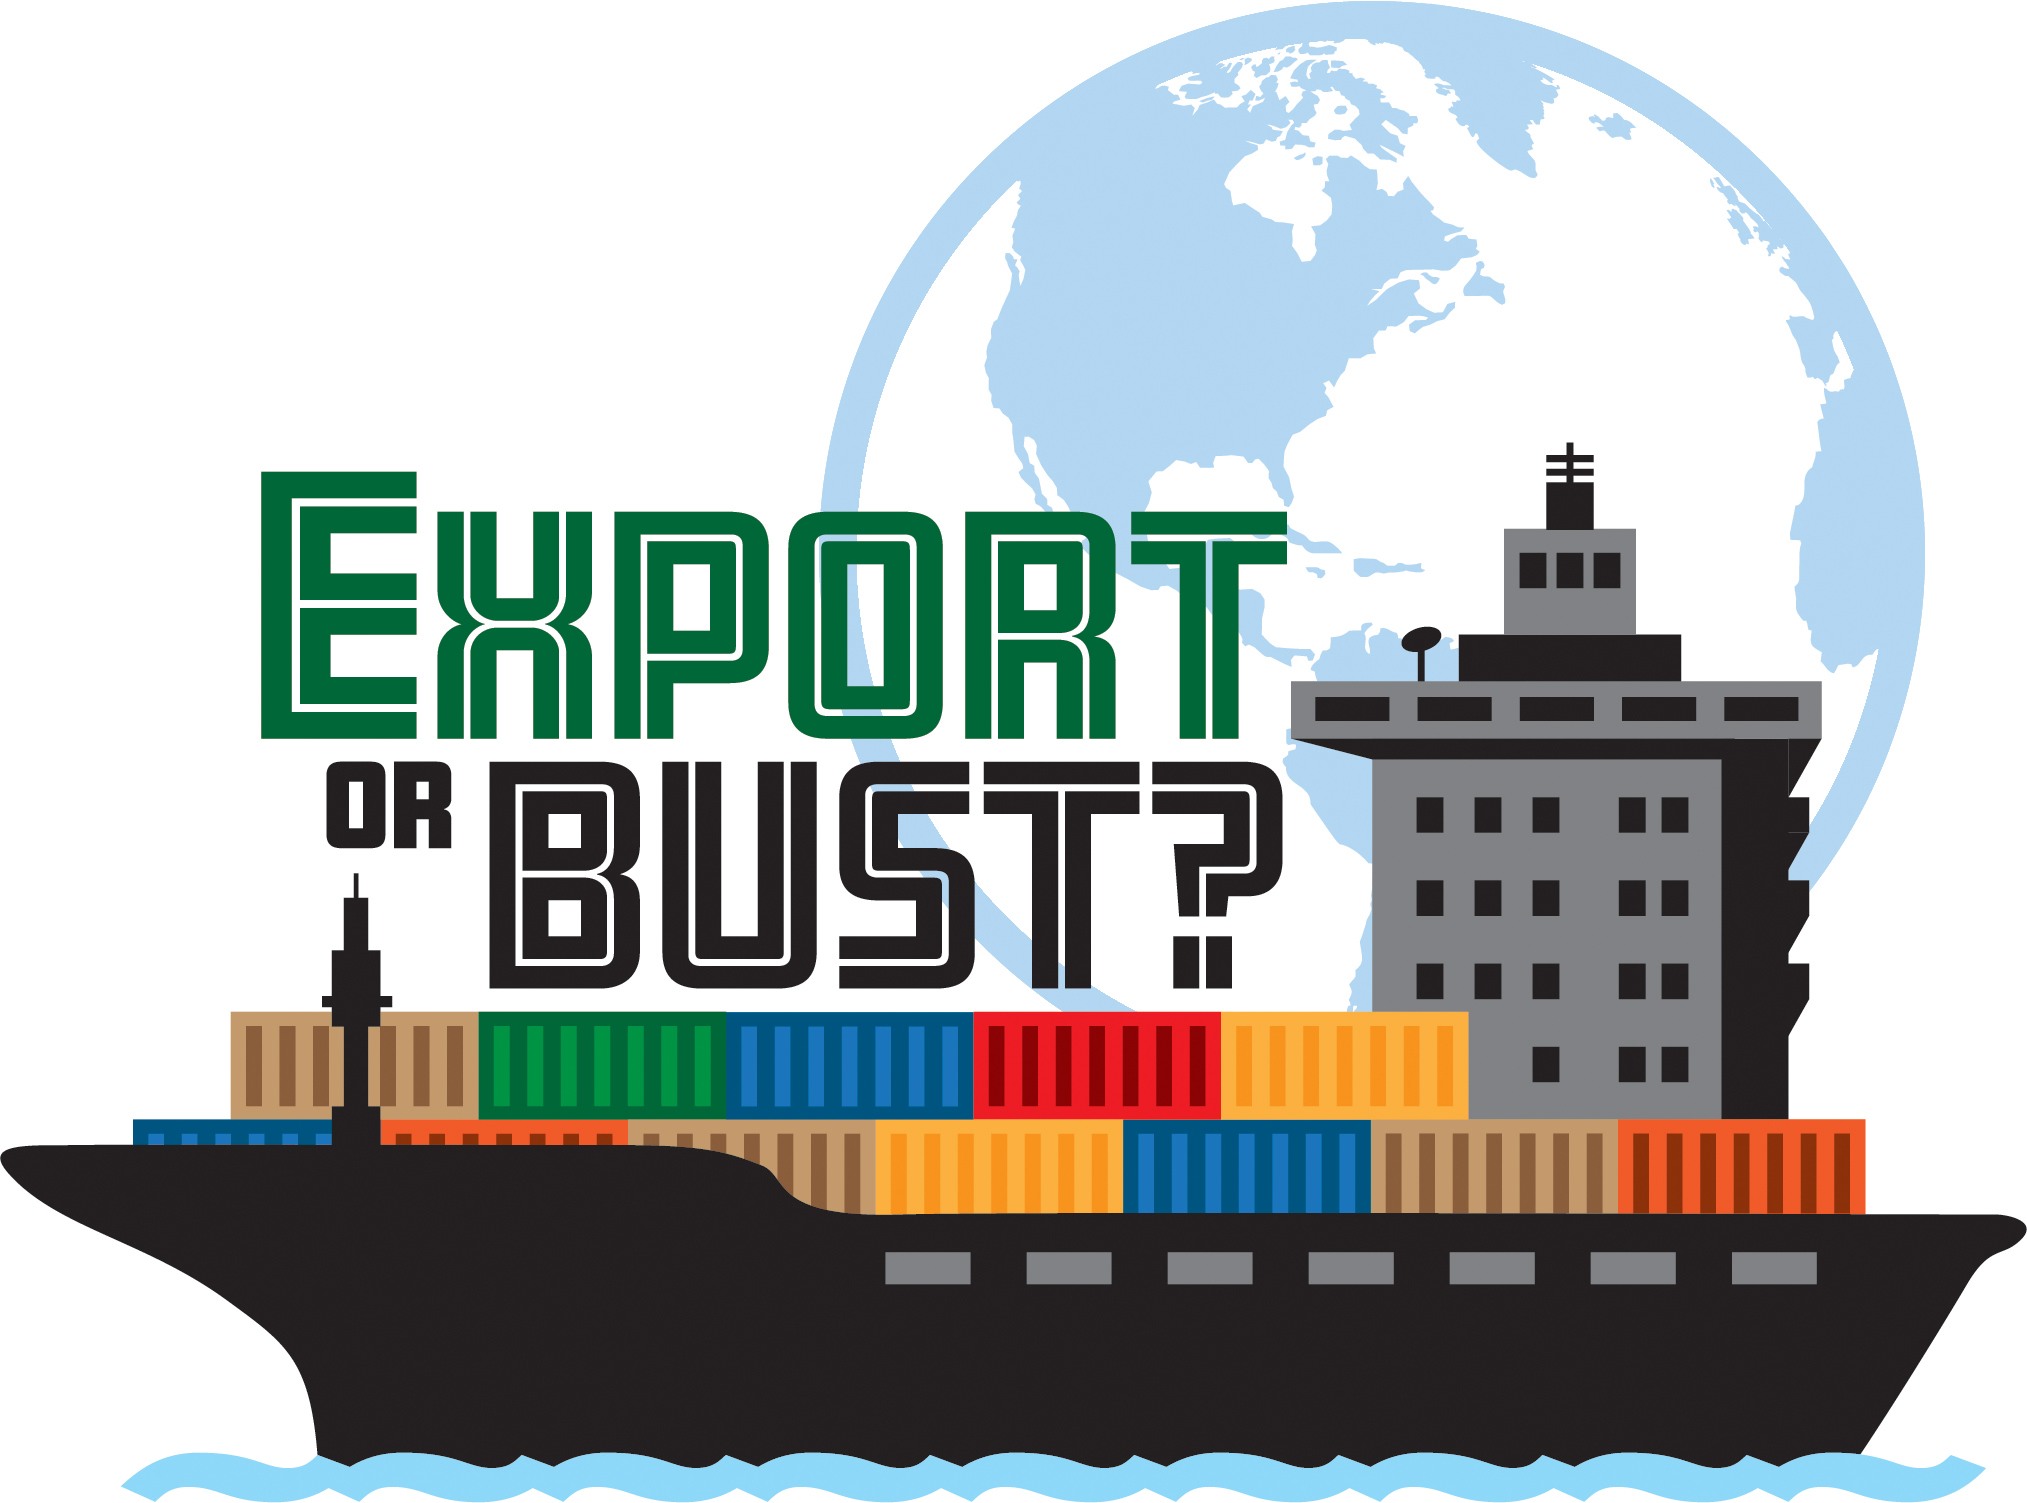 Export_or_bust_logo